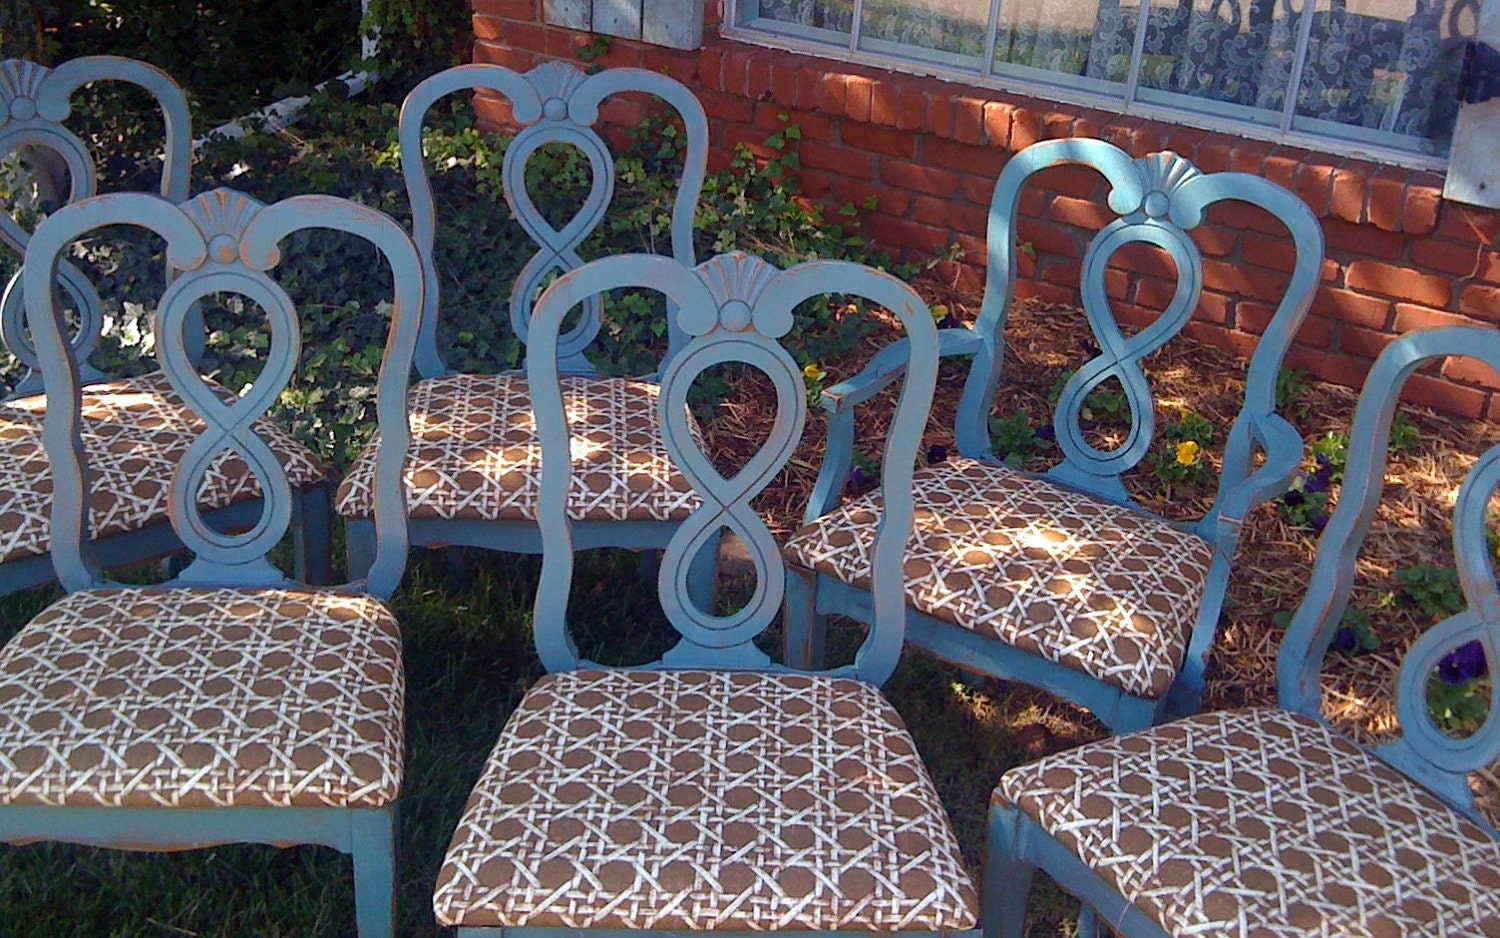 Sale French Country Dining Chairs Painted Teal Brown White